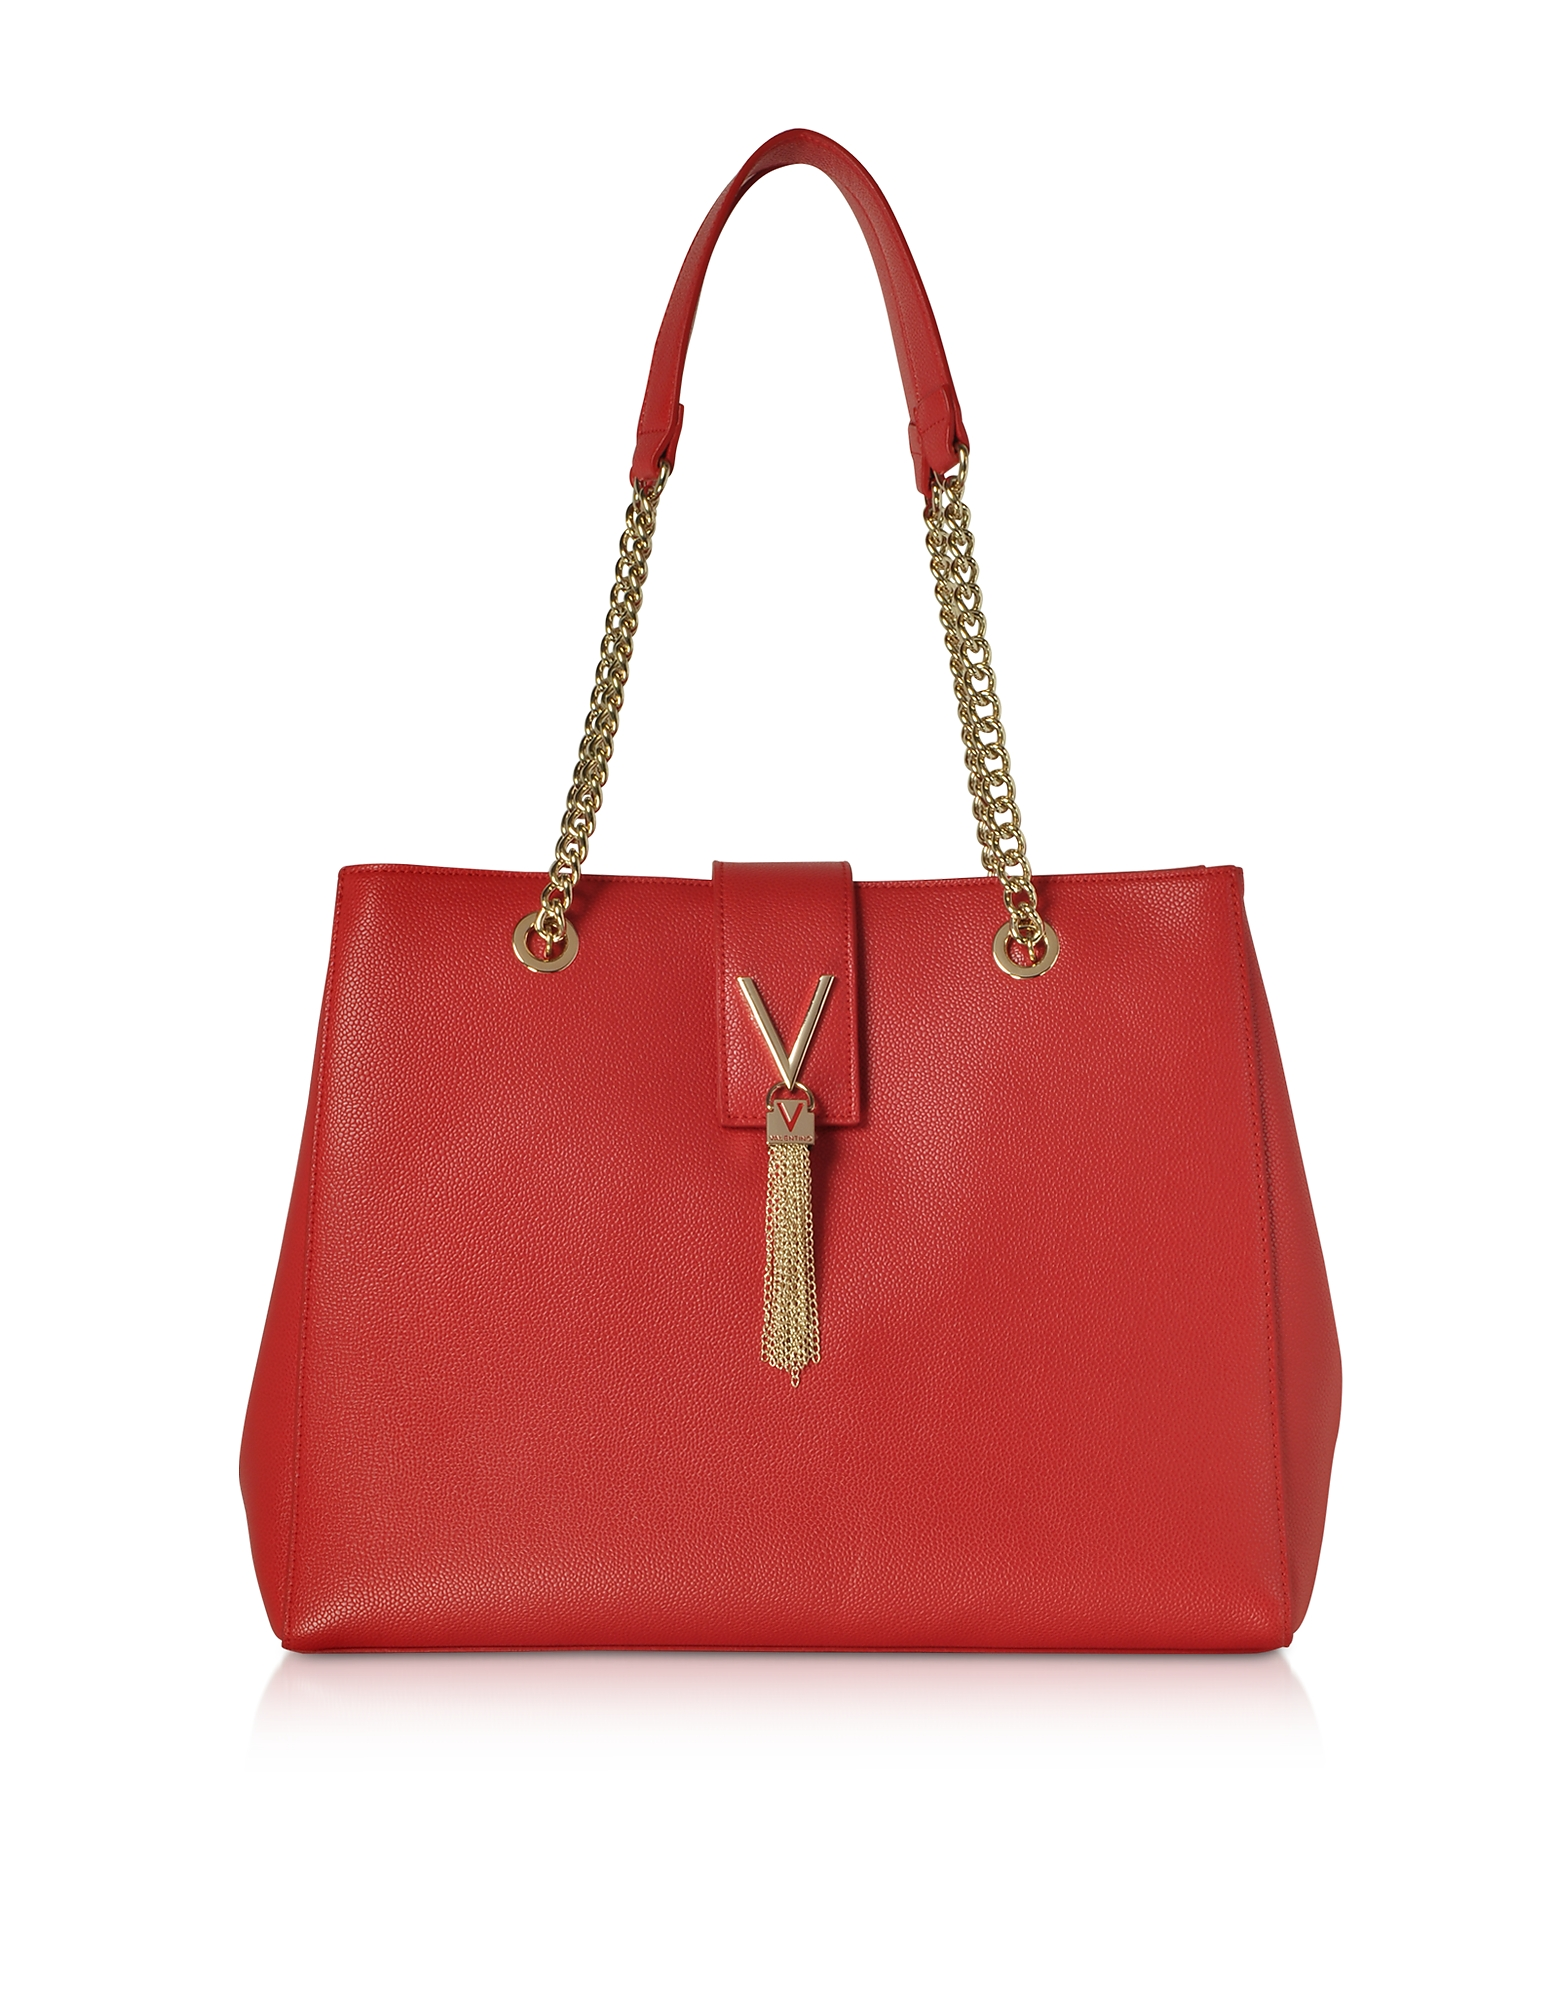 Valentino by Mario Valentino Handbags, Lizard Embossed Eco Leather Divina Tote Bag